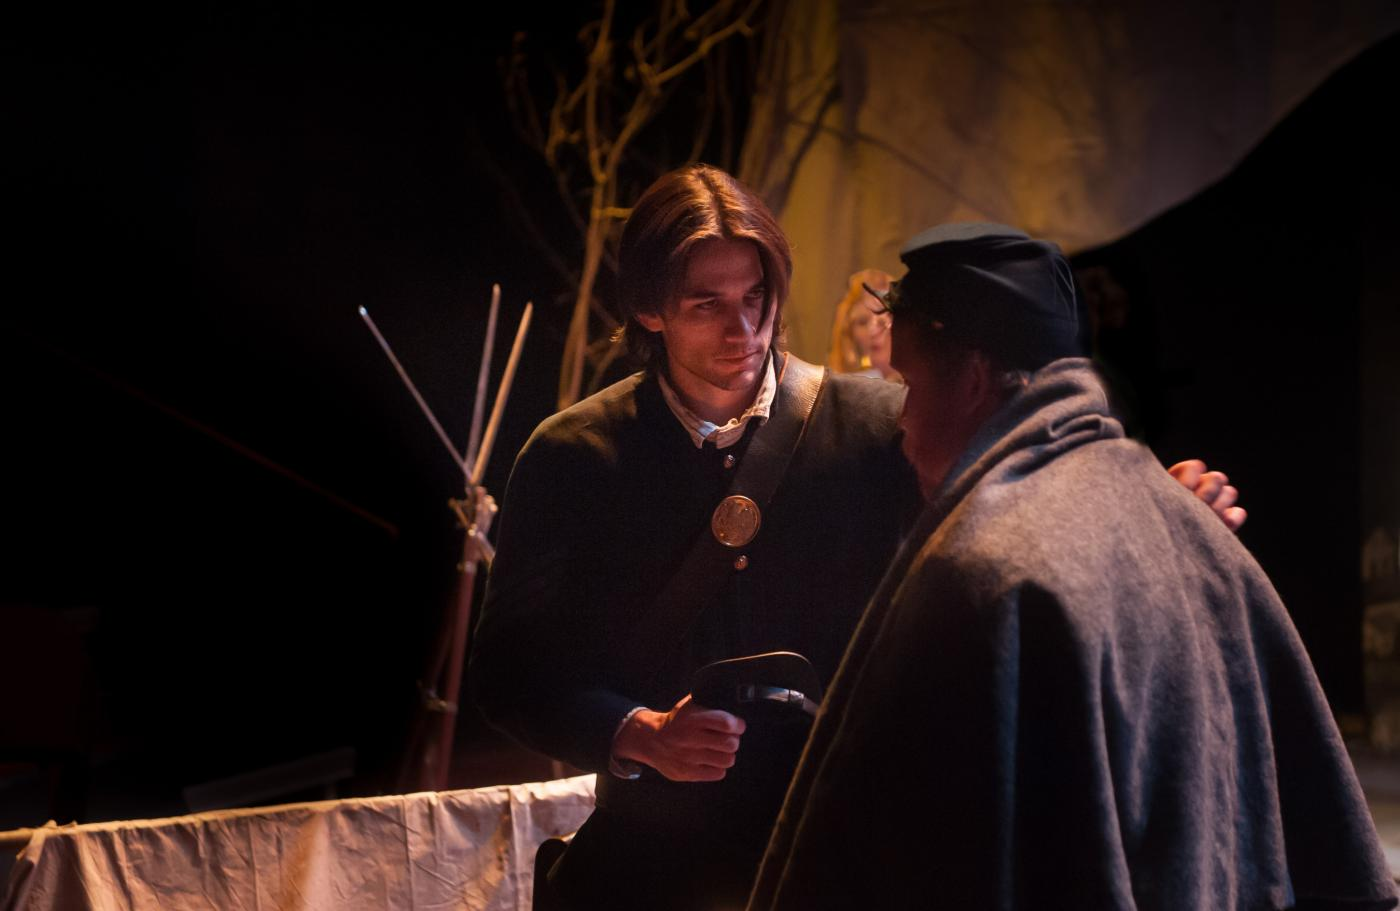 Two actors in civil war era attire have a conversation on a dimly lit stage